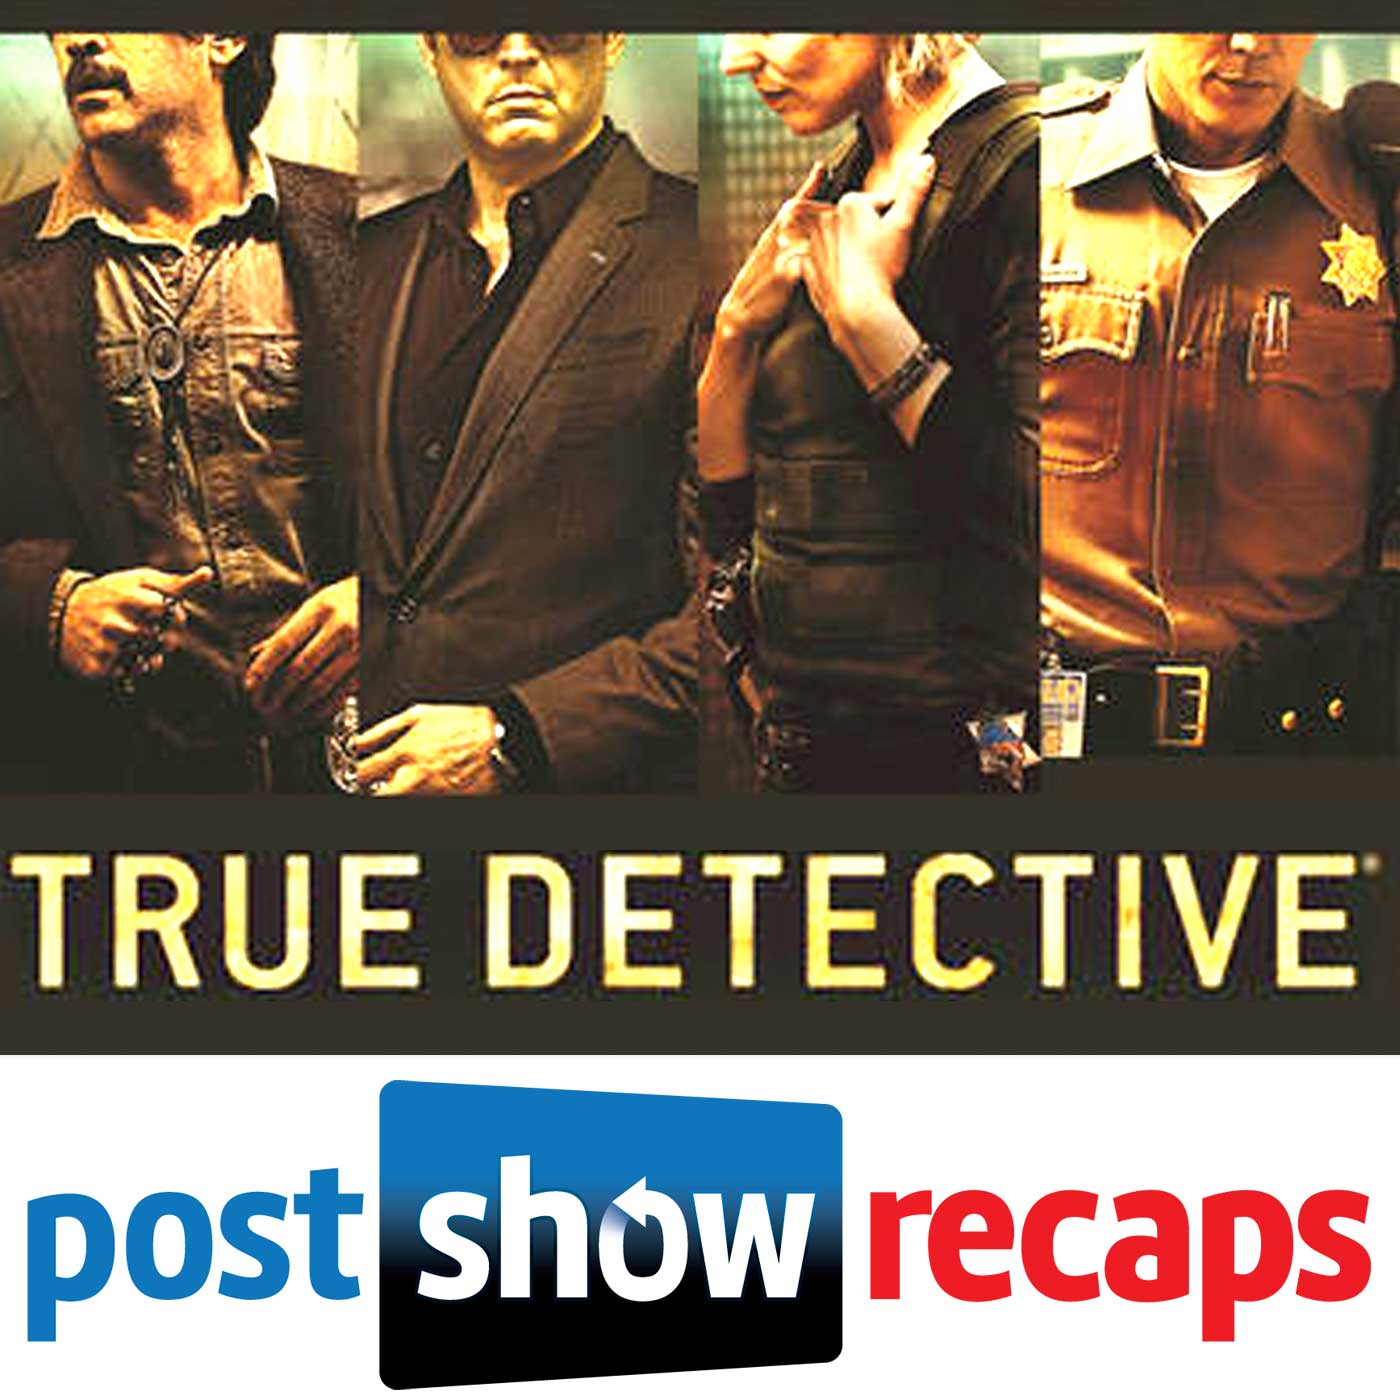 True Detective | Post Show Recaps of the HBO Series